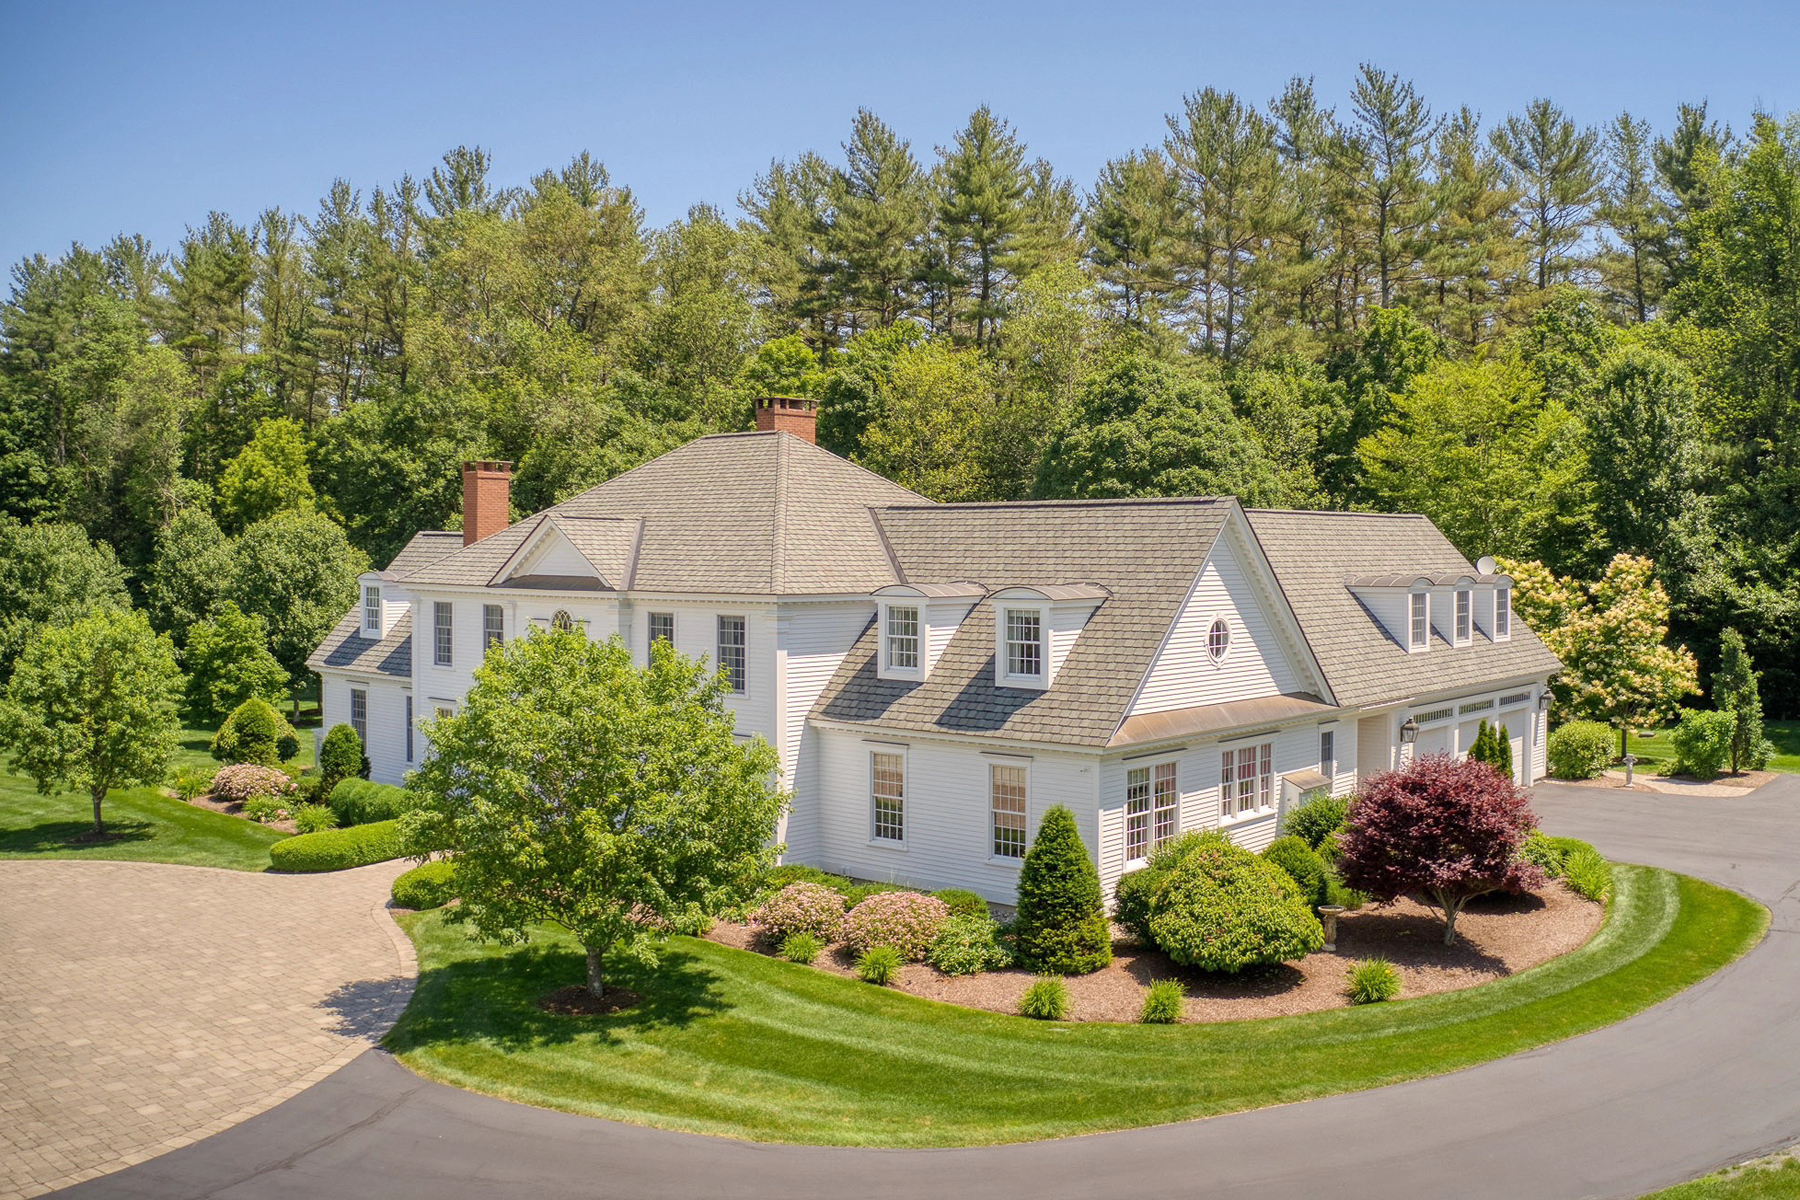 Single Family Homes for Active at 61 North Road, Walpole 61 North Rd Walpole, New Hampshire 03608 United States